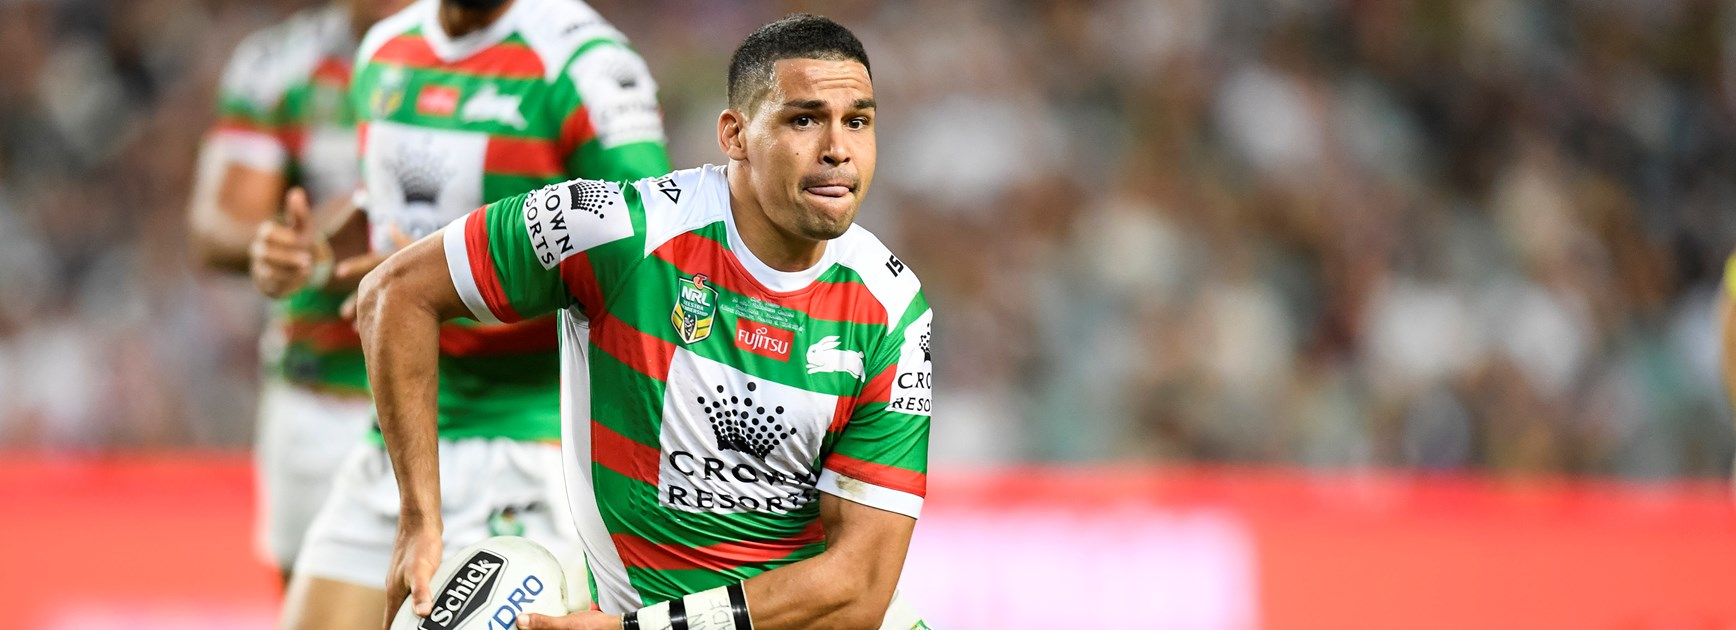 Rabbitohs' squad trimmed for Suncorp trip